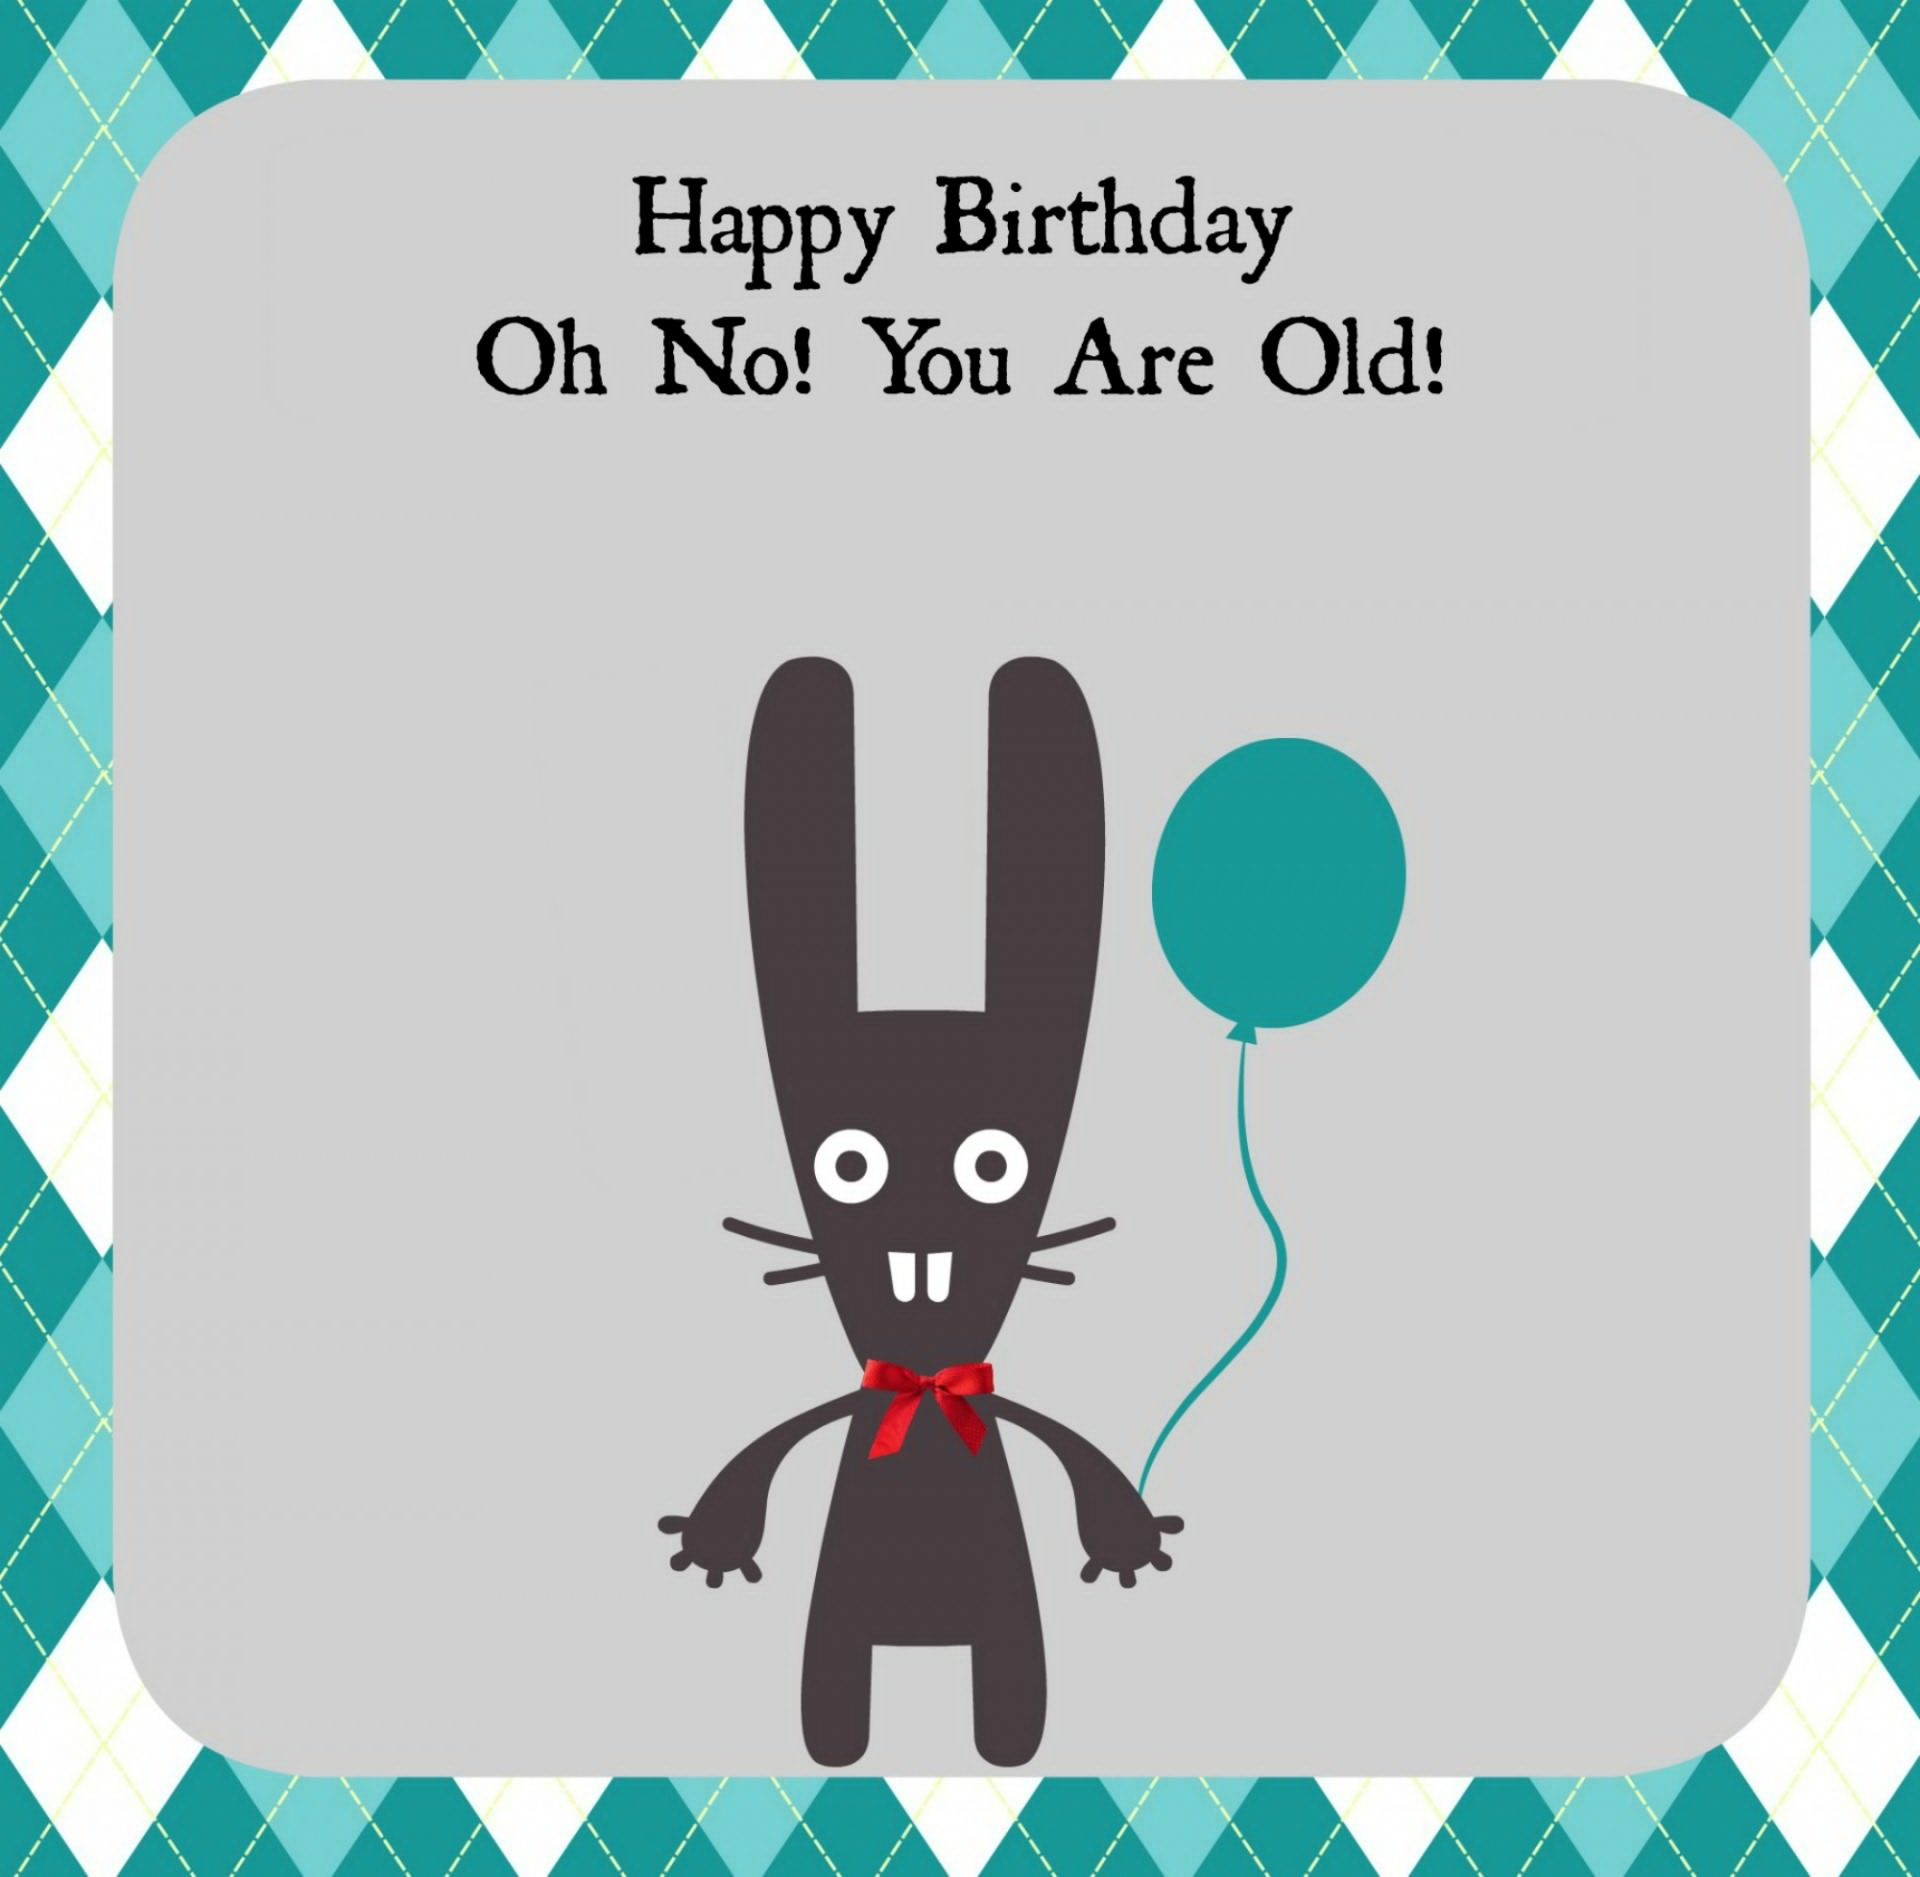 Birthday ECard 4 Happy Ecard